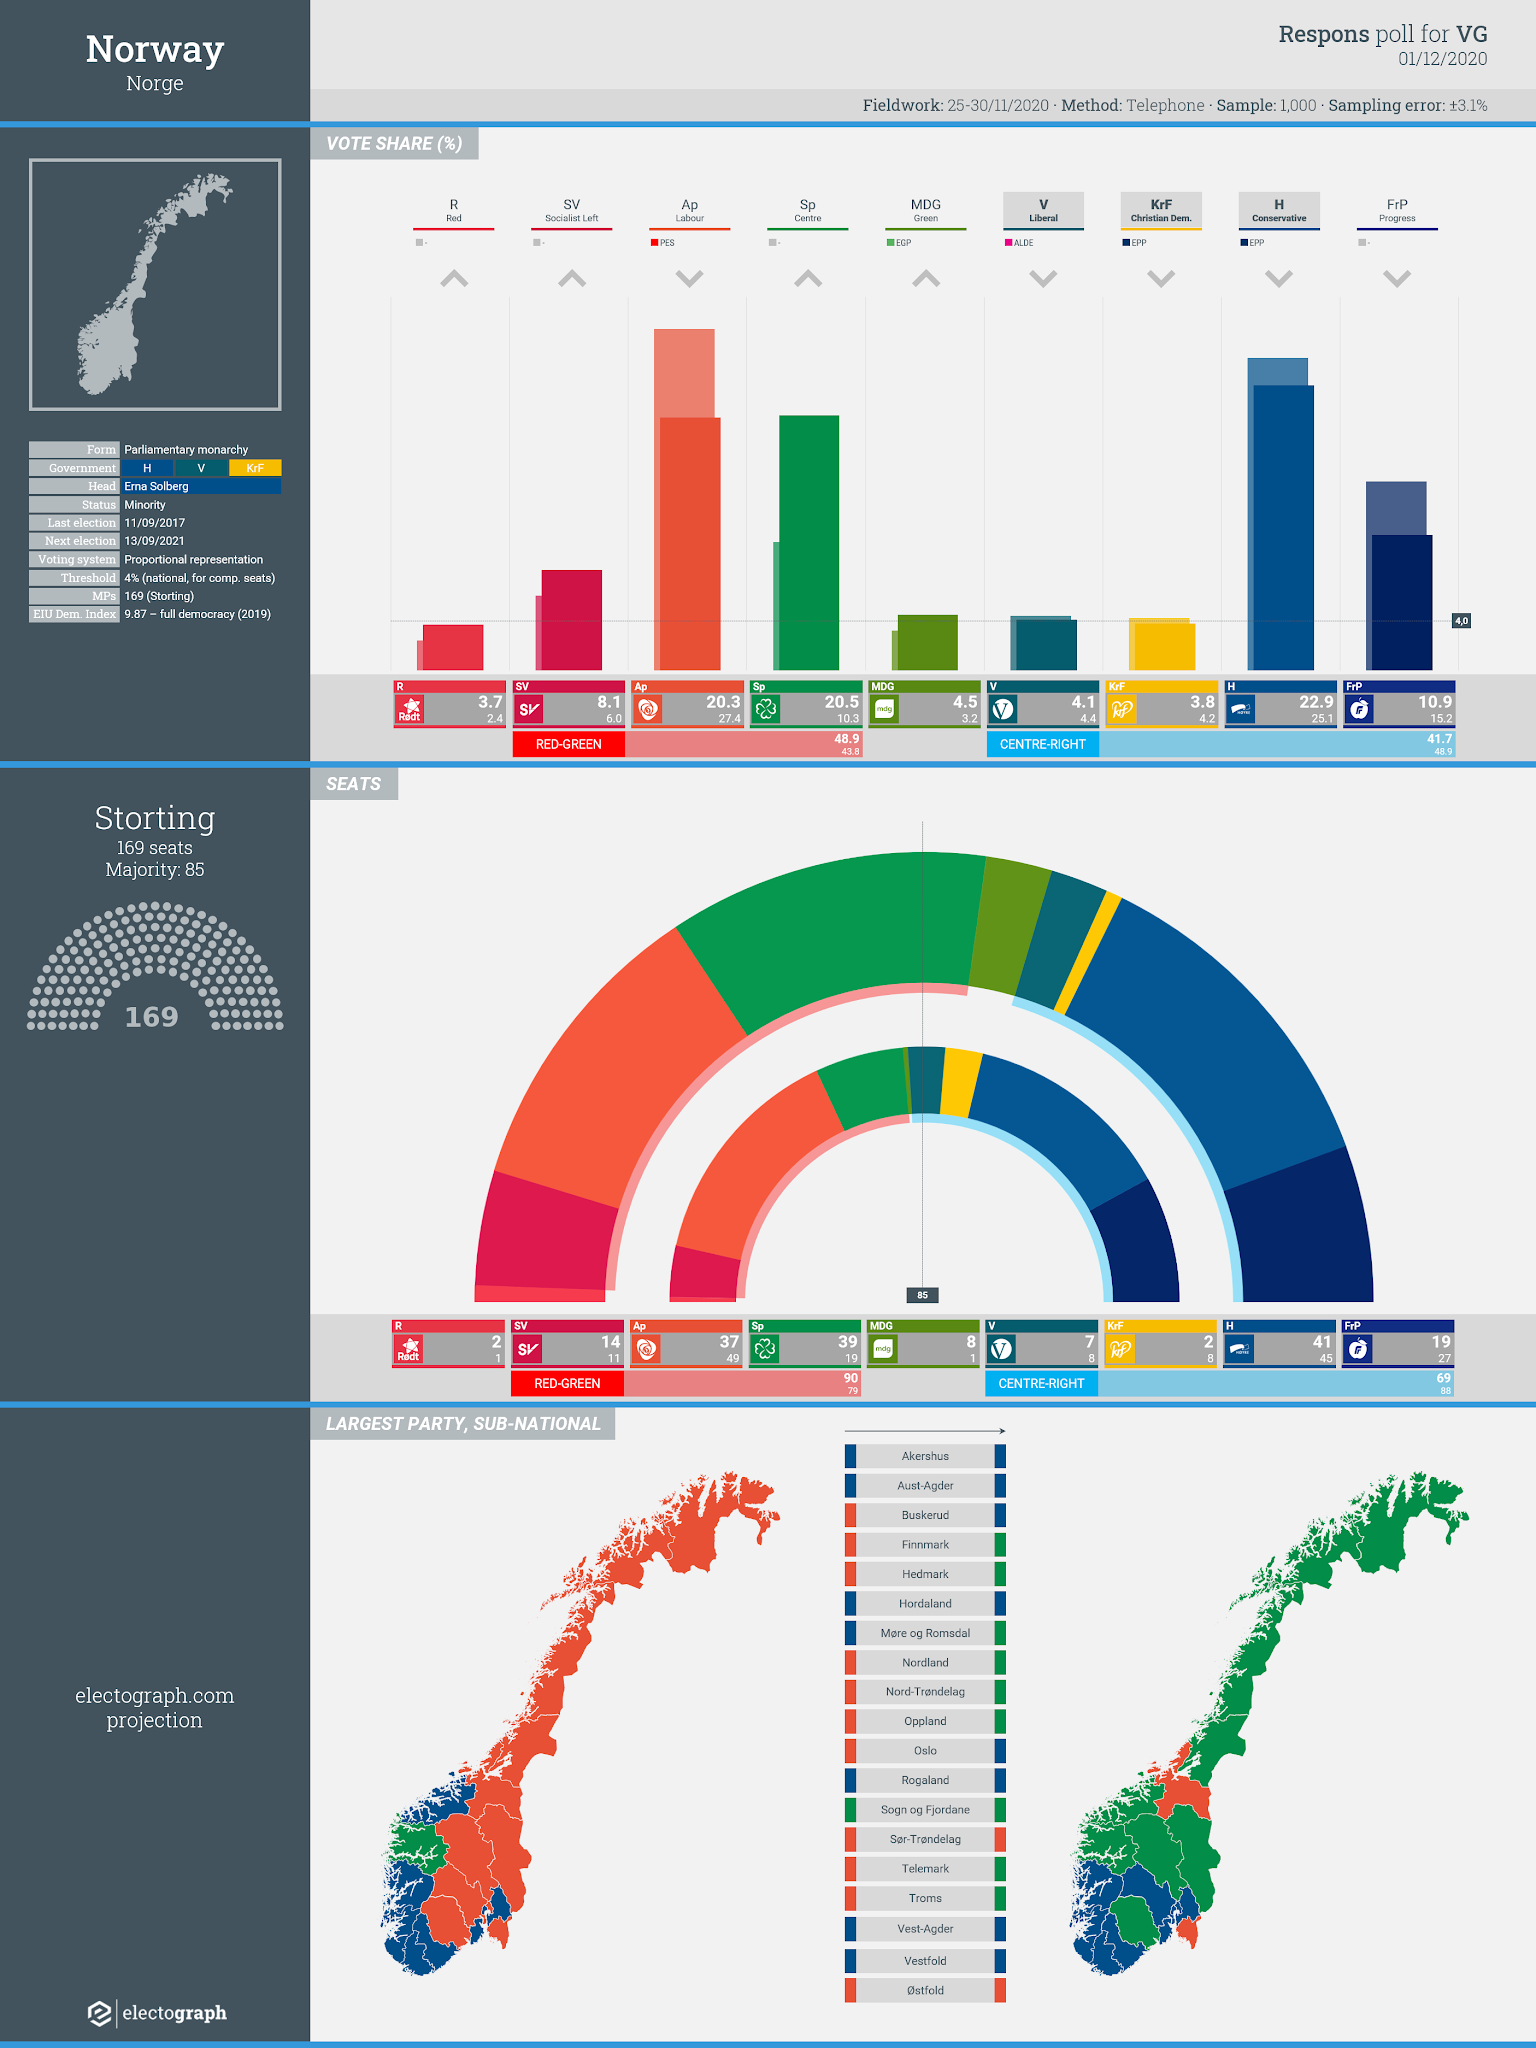 NORWAY: Respons Analyse poll chart for VG, 1 December 2020